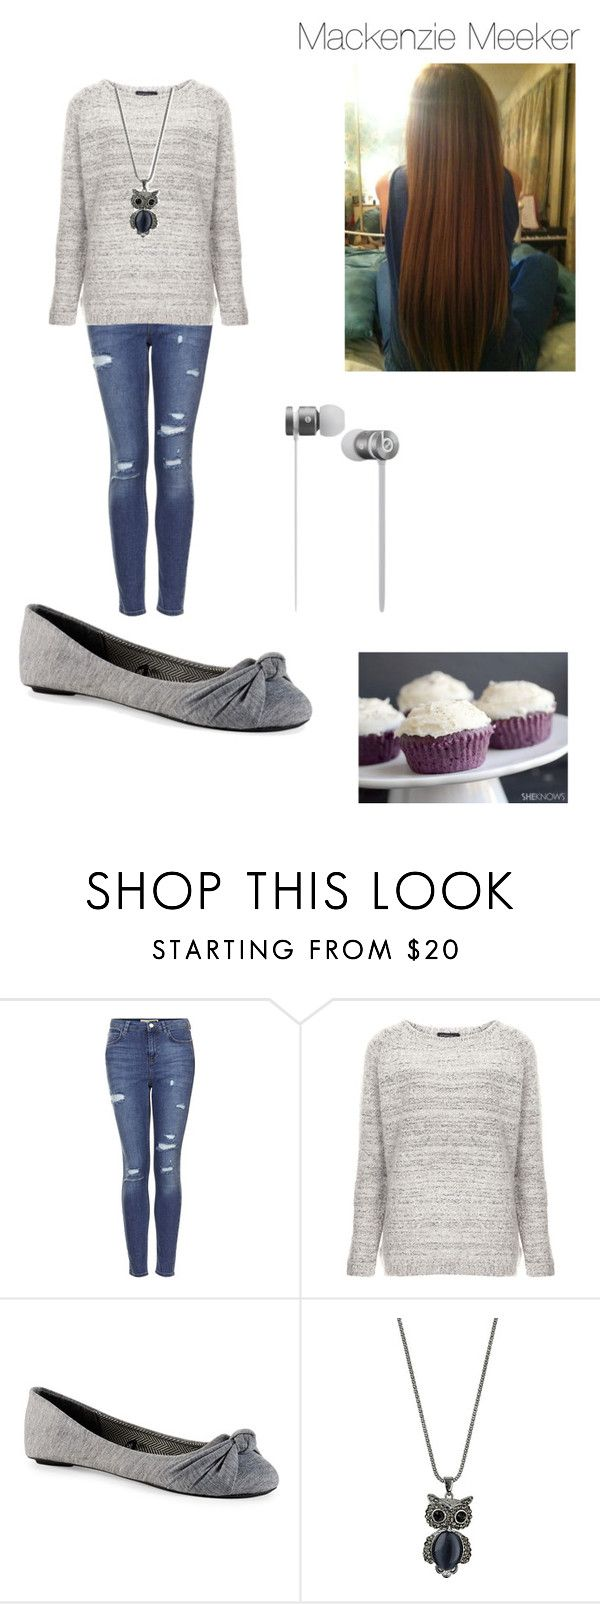 """""""Simple Sample"""" by kimberfly ❤ liked on Polyvore featuring interior, interiors, interior design, home, home decor, interior decorating, Topshop, Aéropostale, Wallis and Beats by Dr. Dre"""